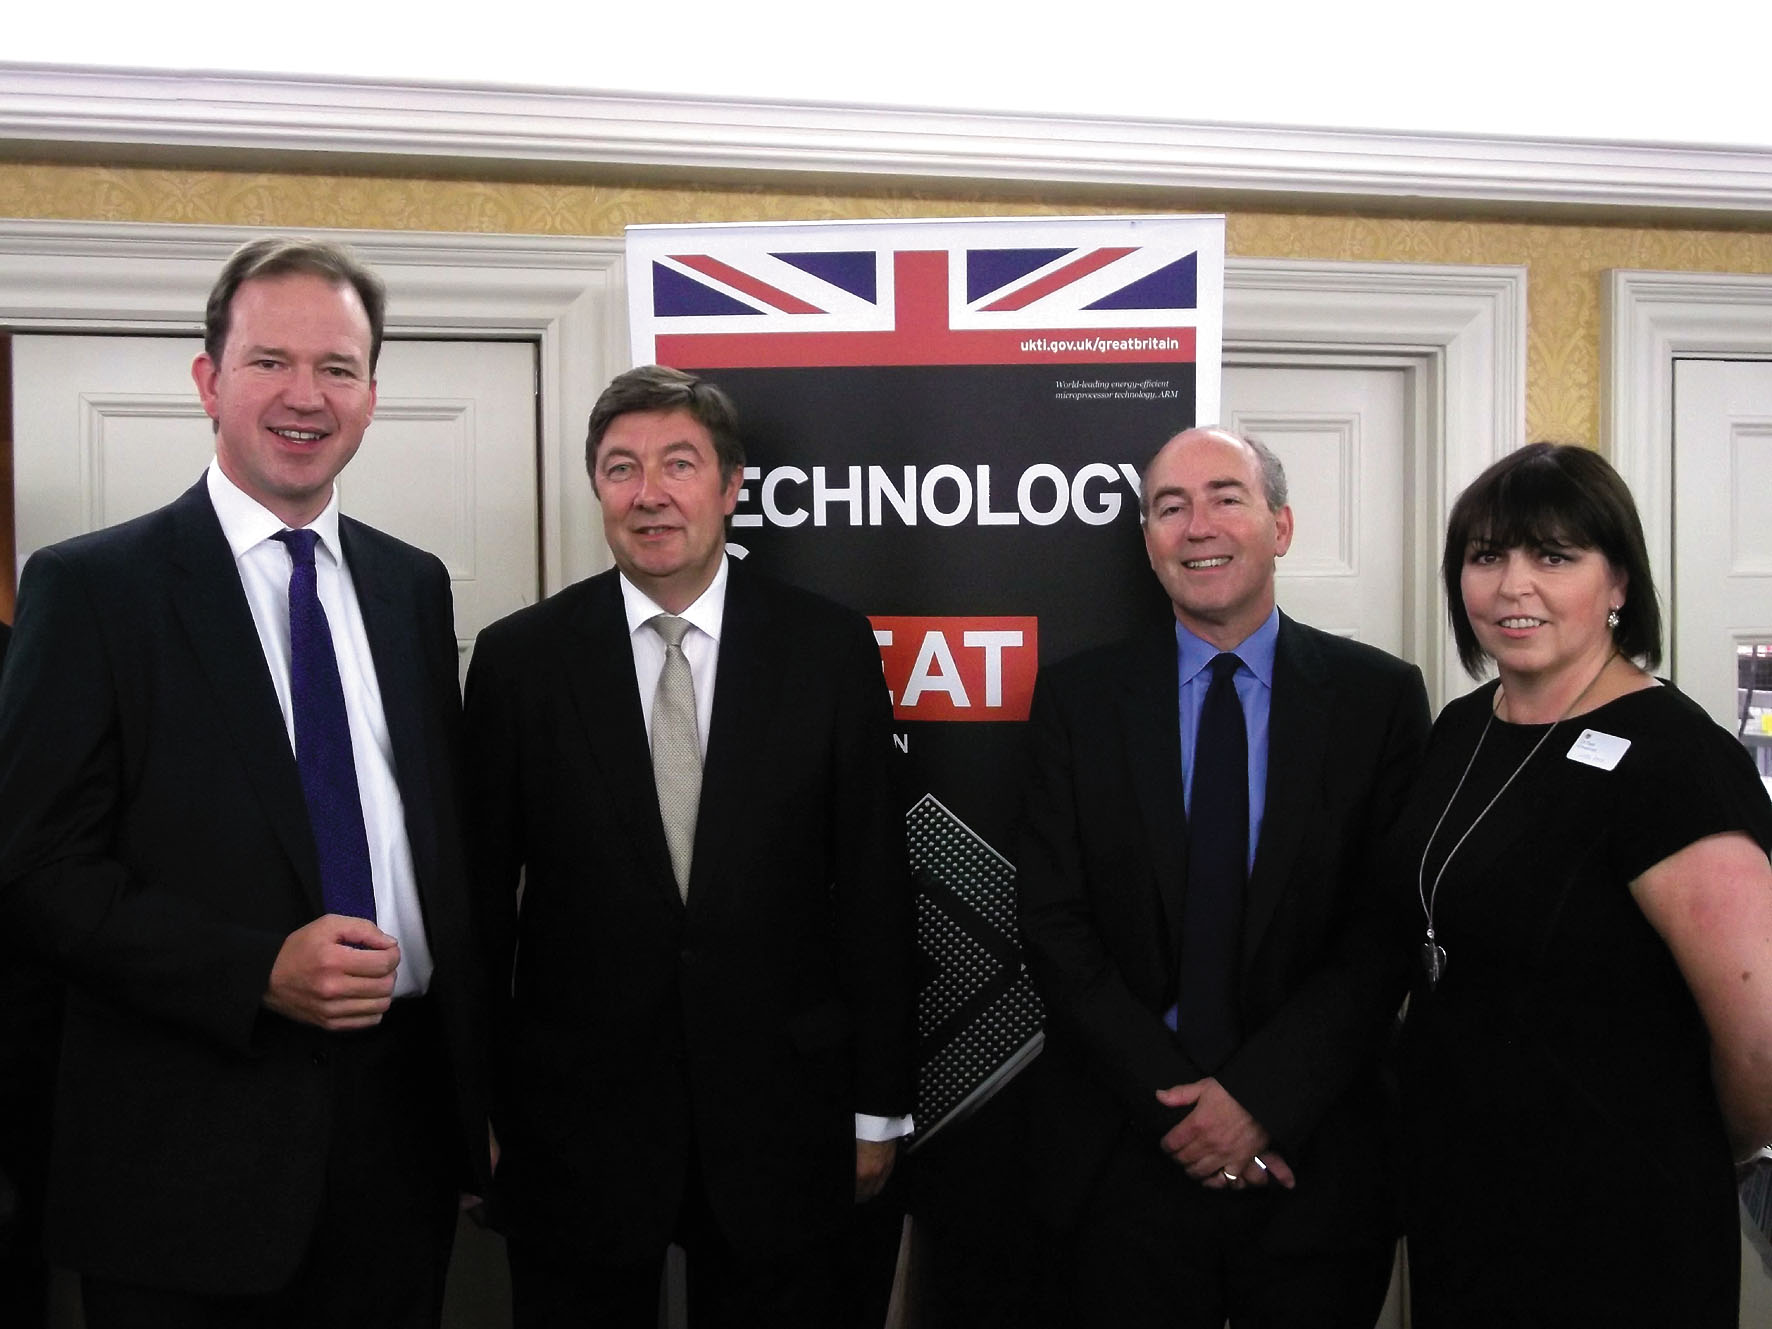 From left: Jesse Norman MP, Premier League chairman Anthony Fry, UKTI director of trade Crispin Simon and Linda Smith, head of UKTI for Herefordshire and Worcestershire.